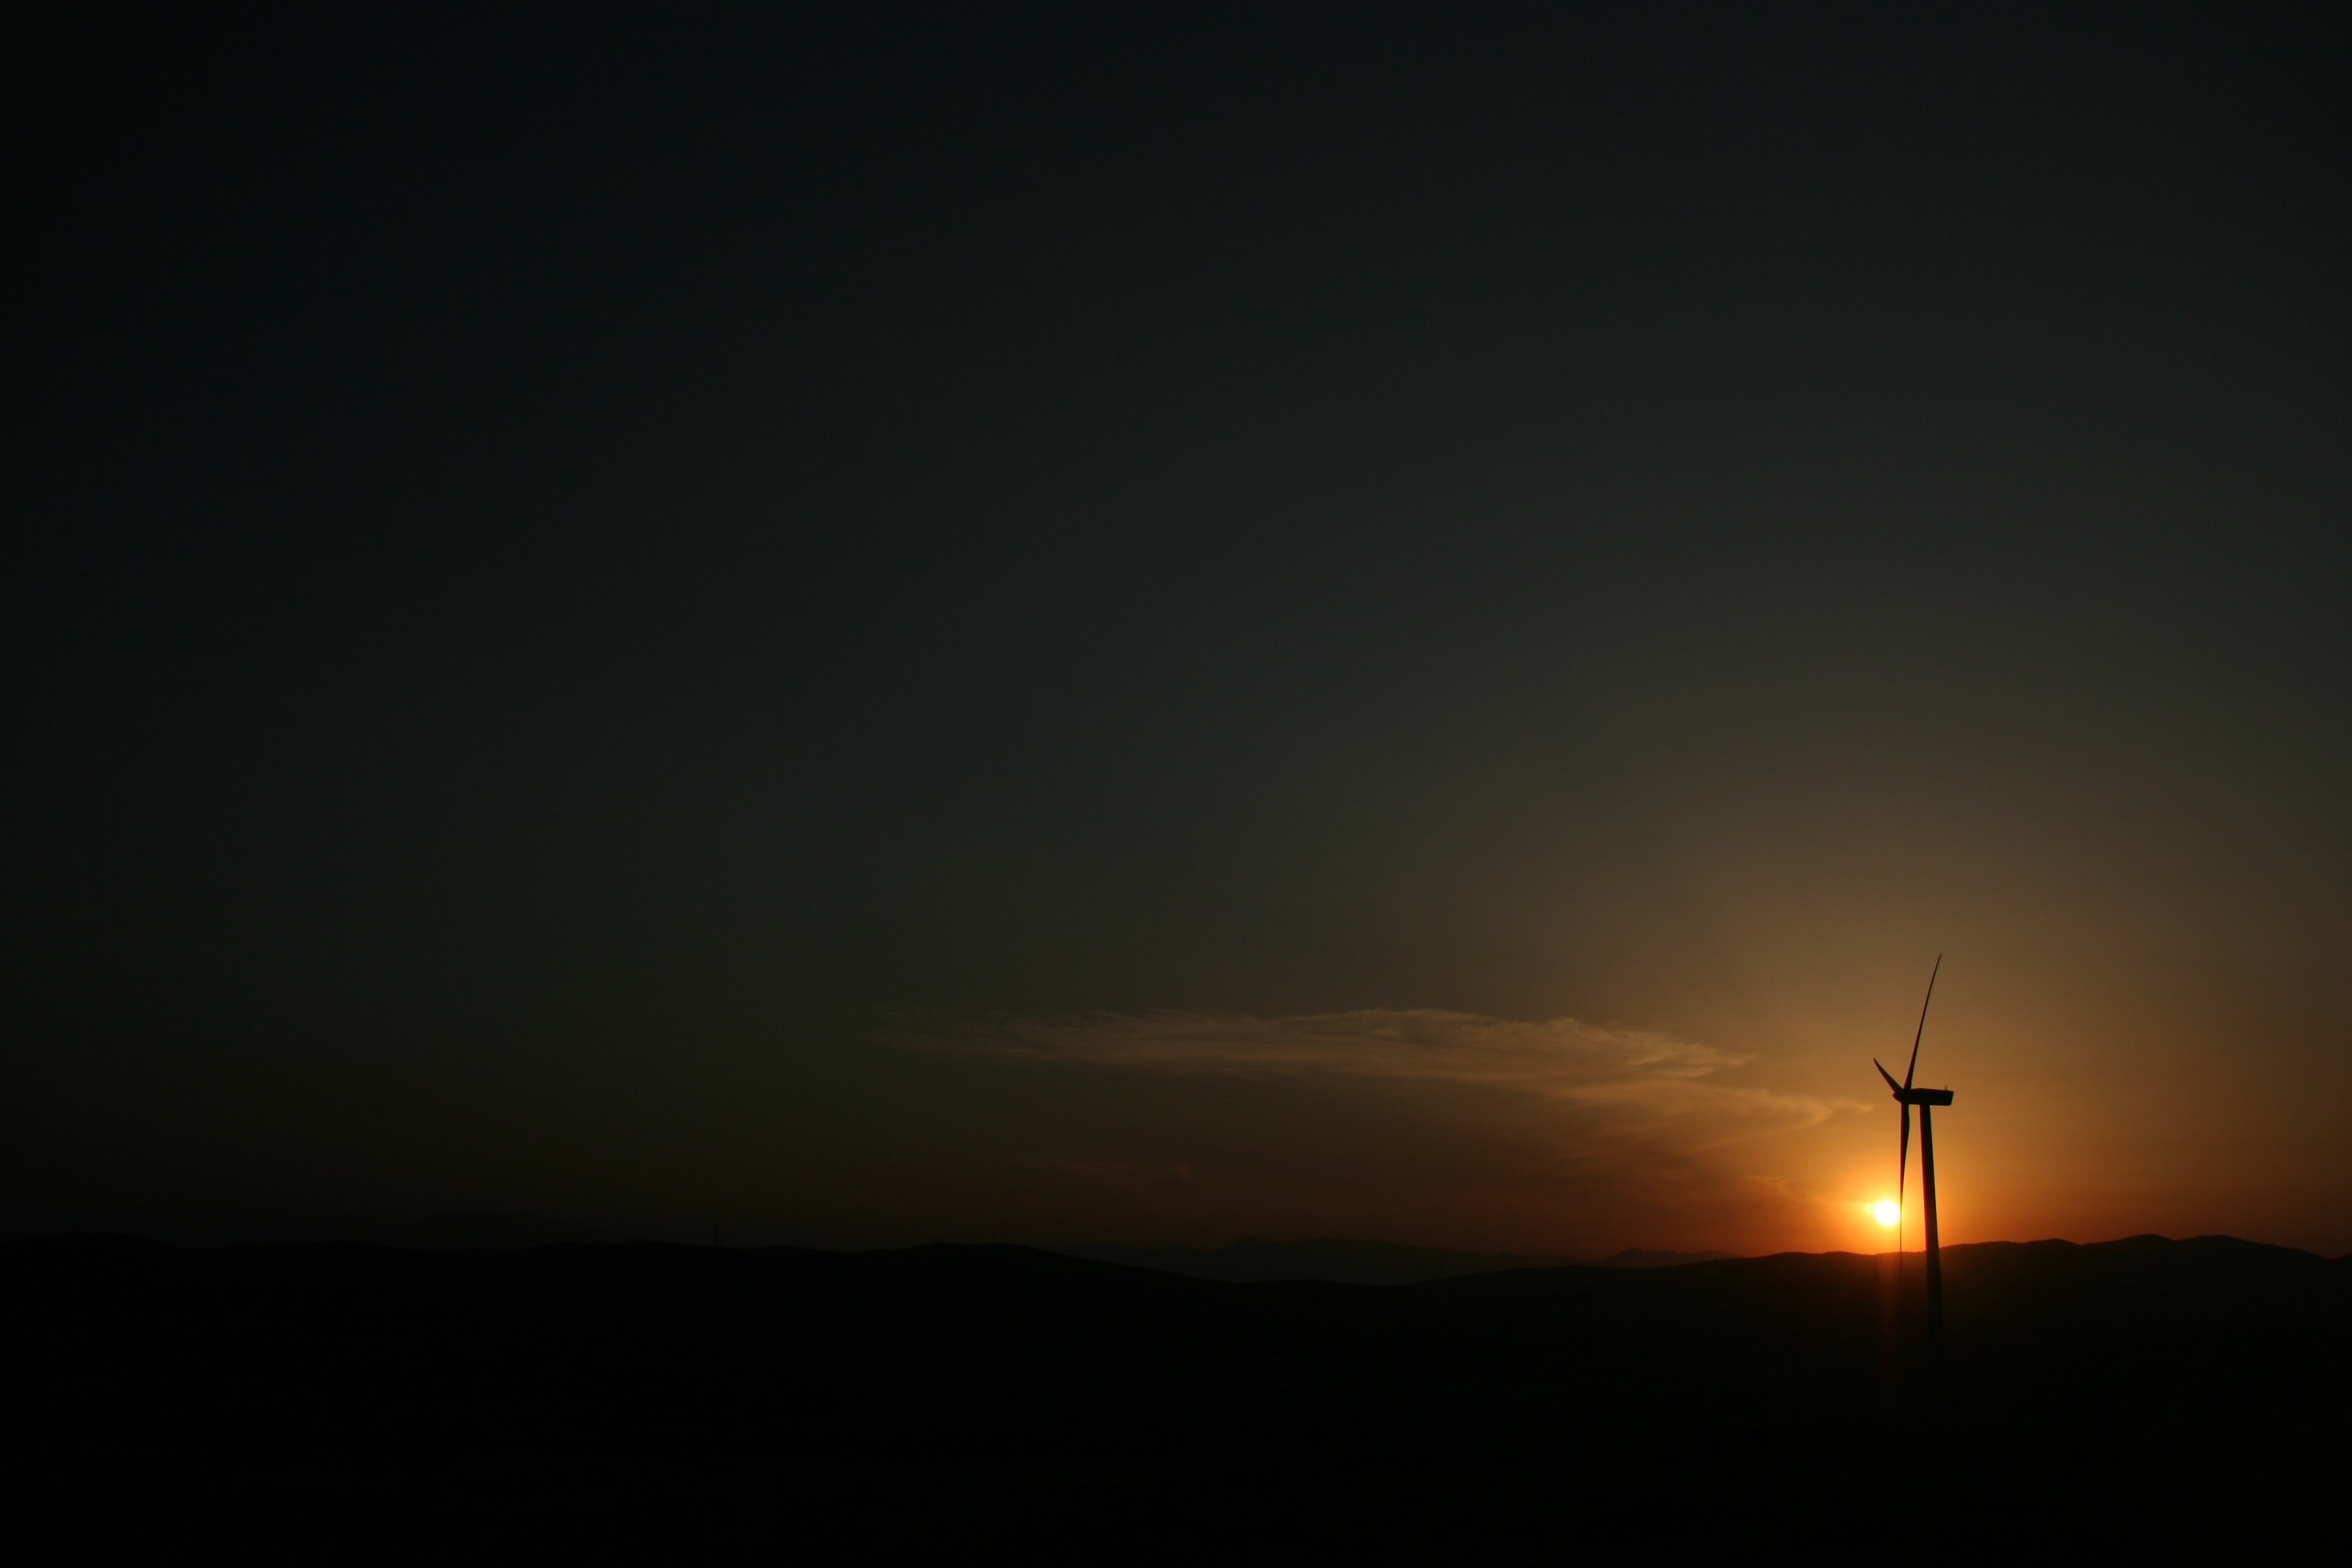 The sunset shines a bright light upon a Pikrolimni wind turbine standing in the darkness of the night